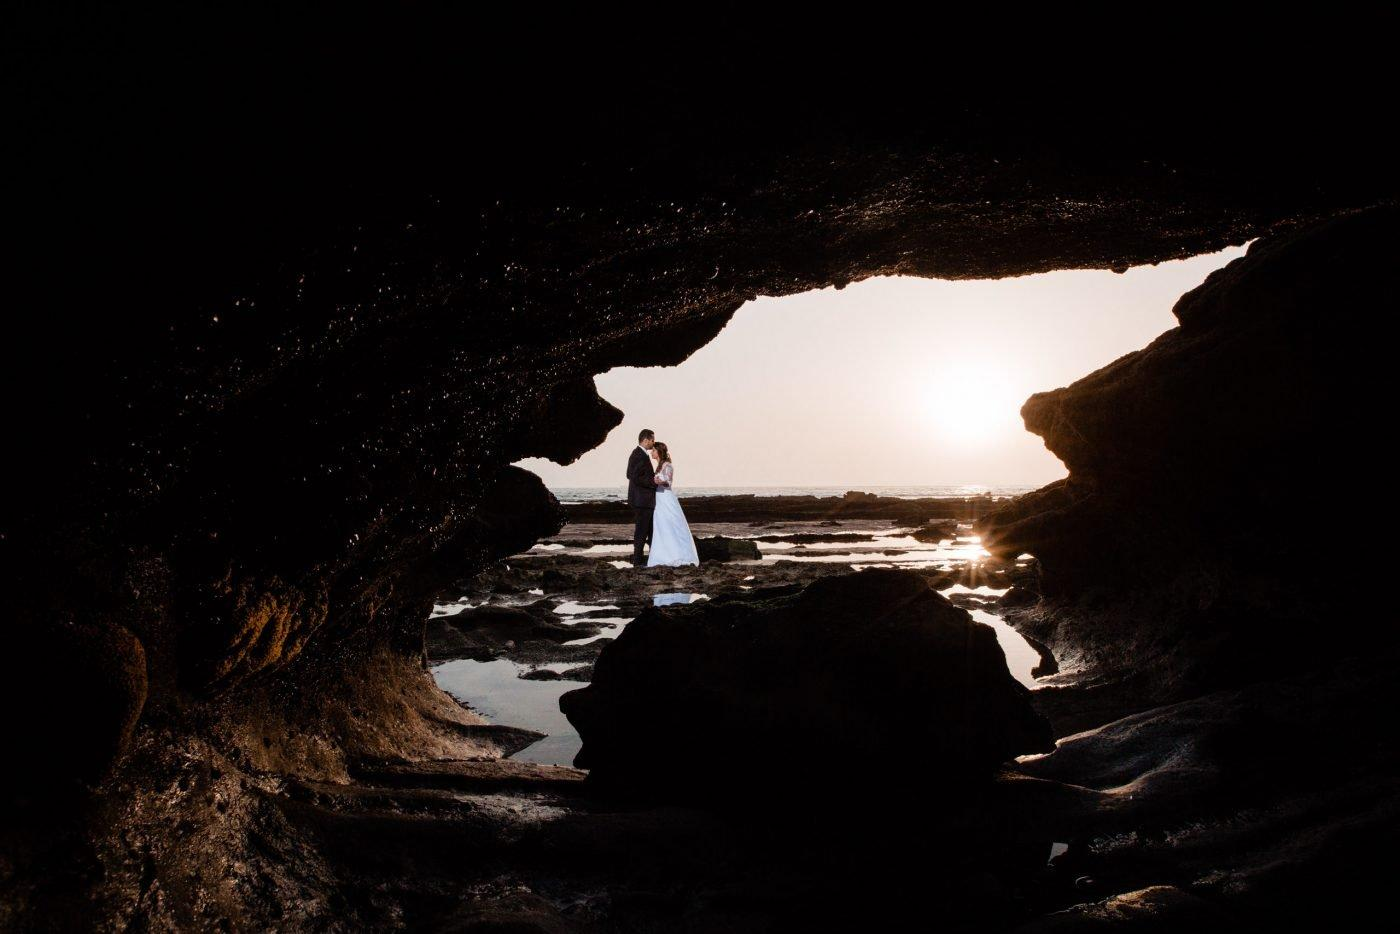 Wedding photoshoot on Agadir beach